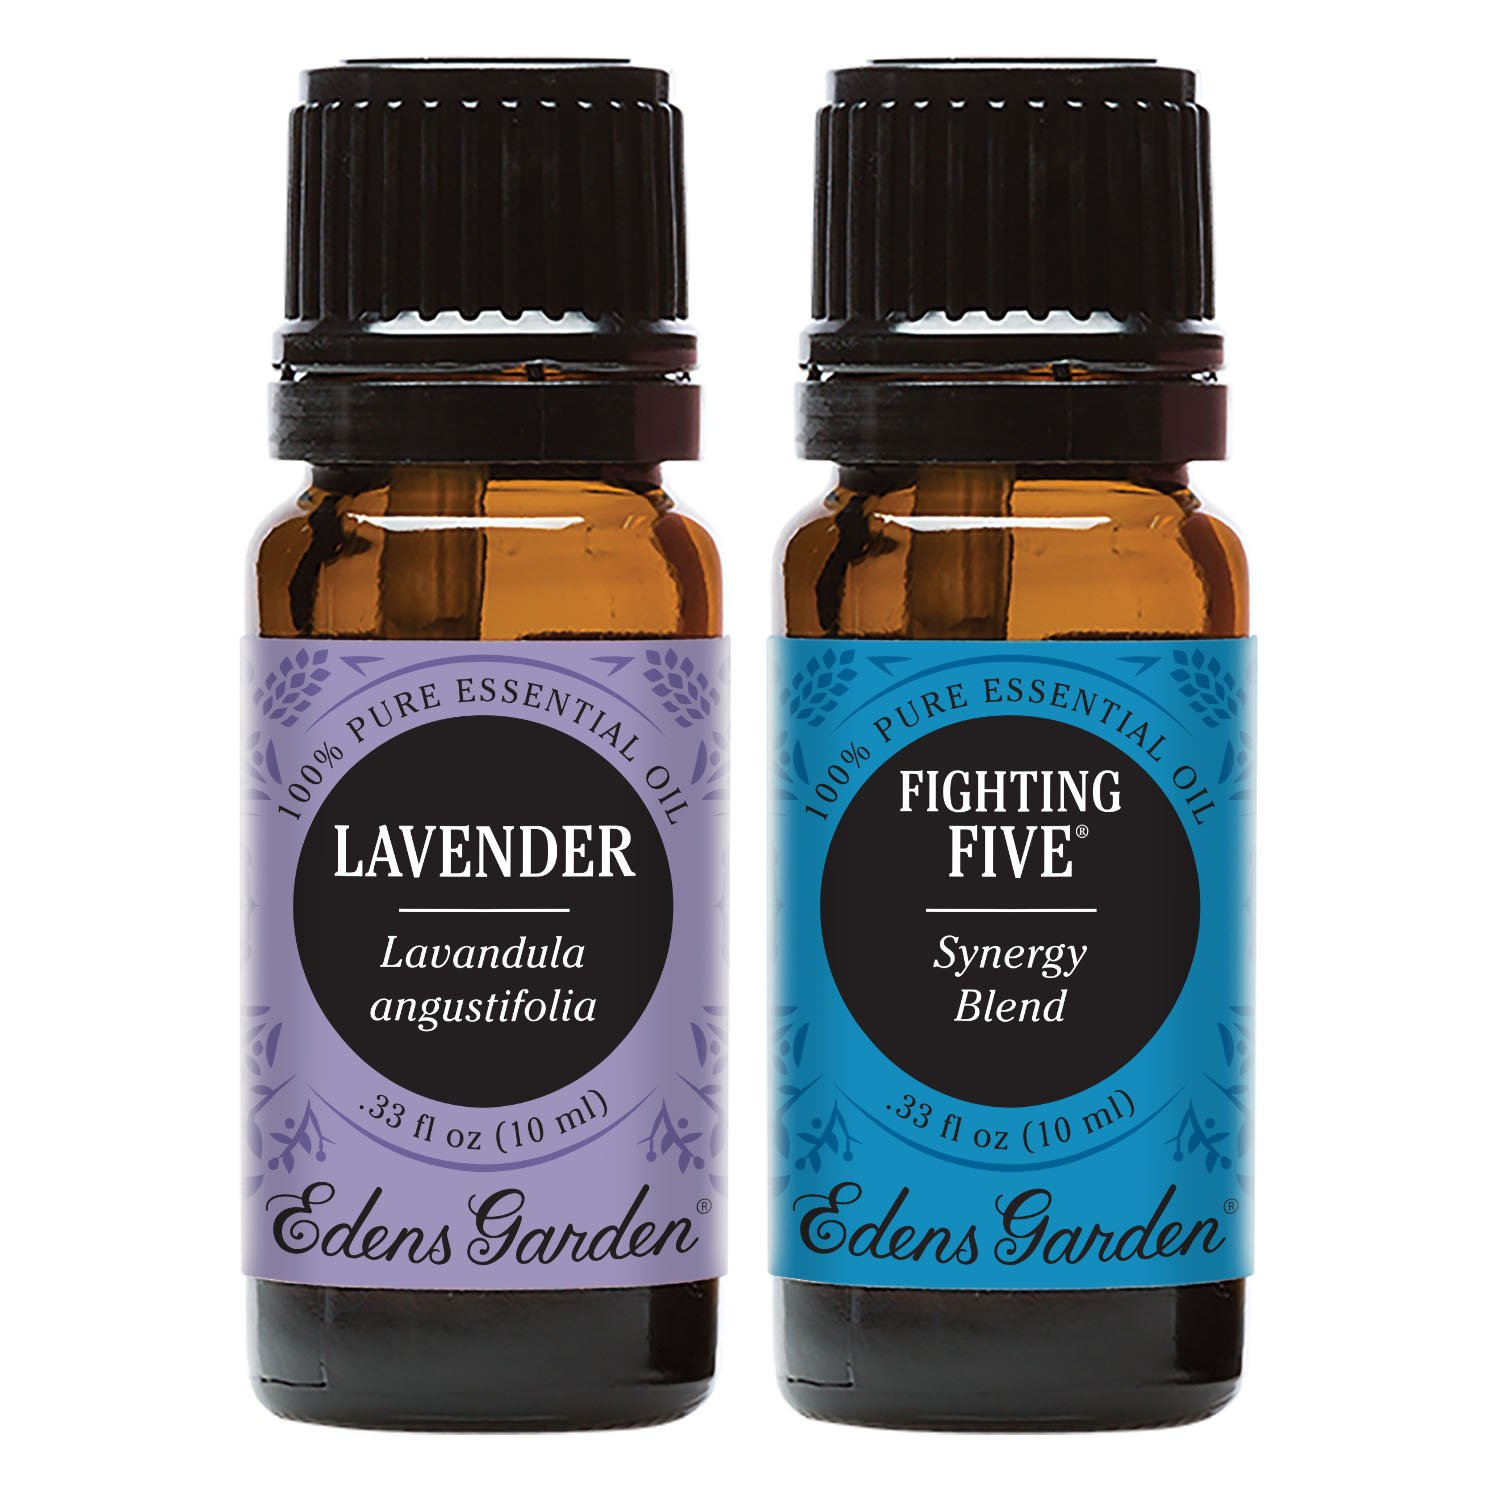 Edens Garden Fighting Five + Lavender Essential Oil Set, Best 100% Pure Aromatherapy Starter Kit (For Diffuser & Therapeutic Use), 10 ml